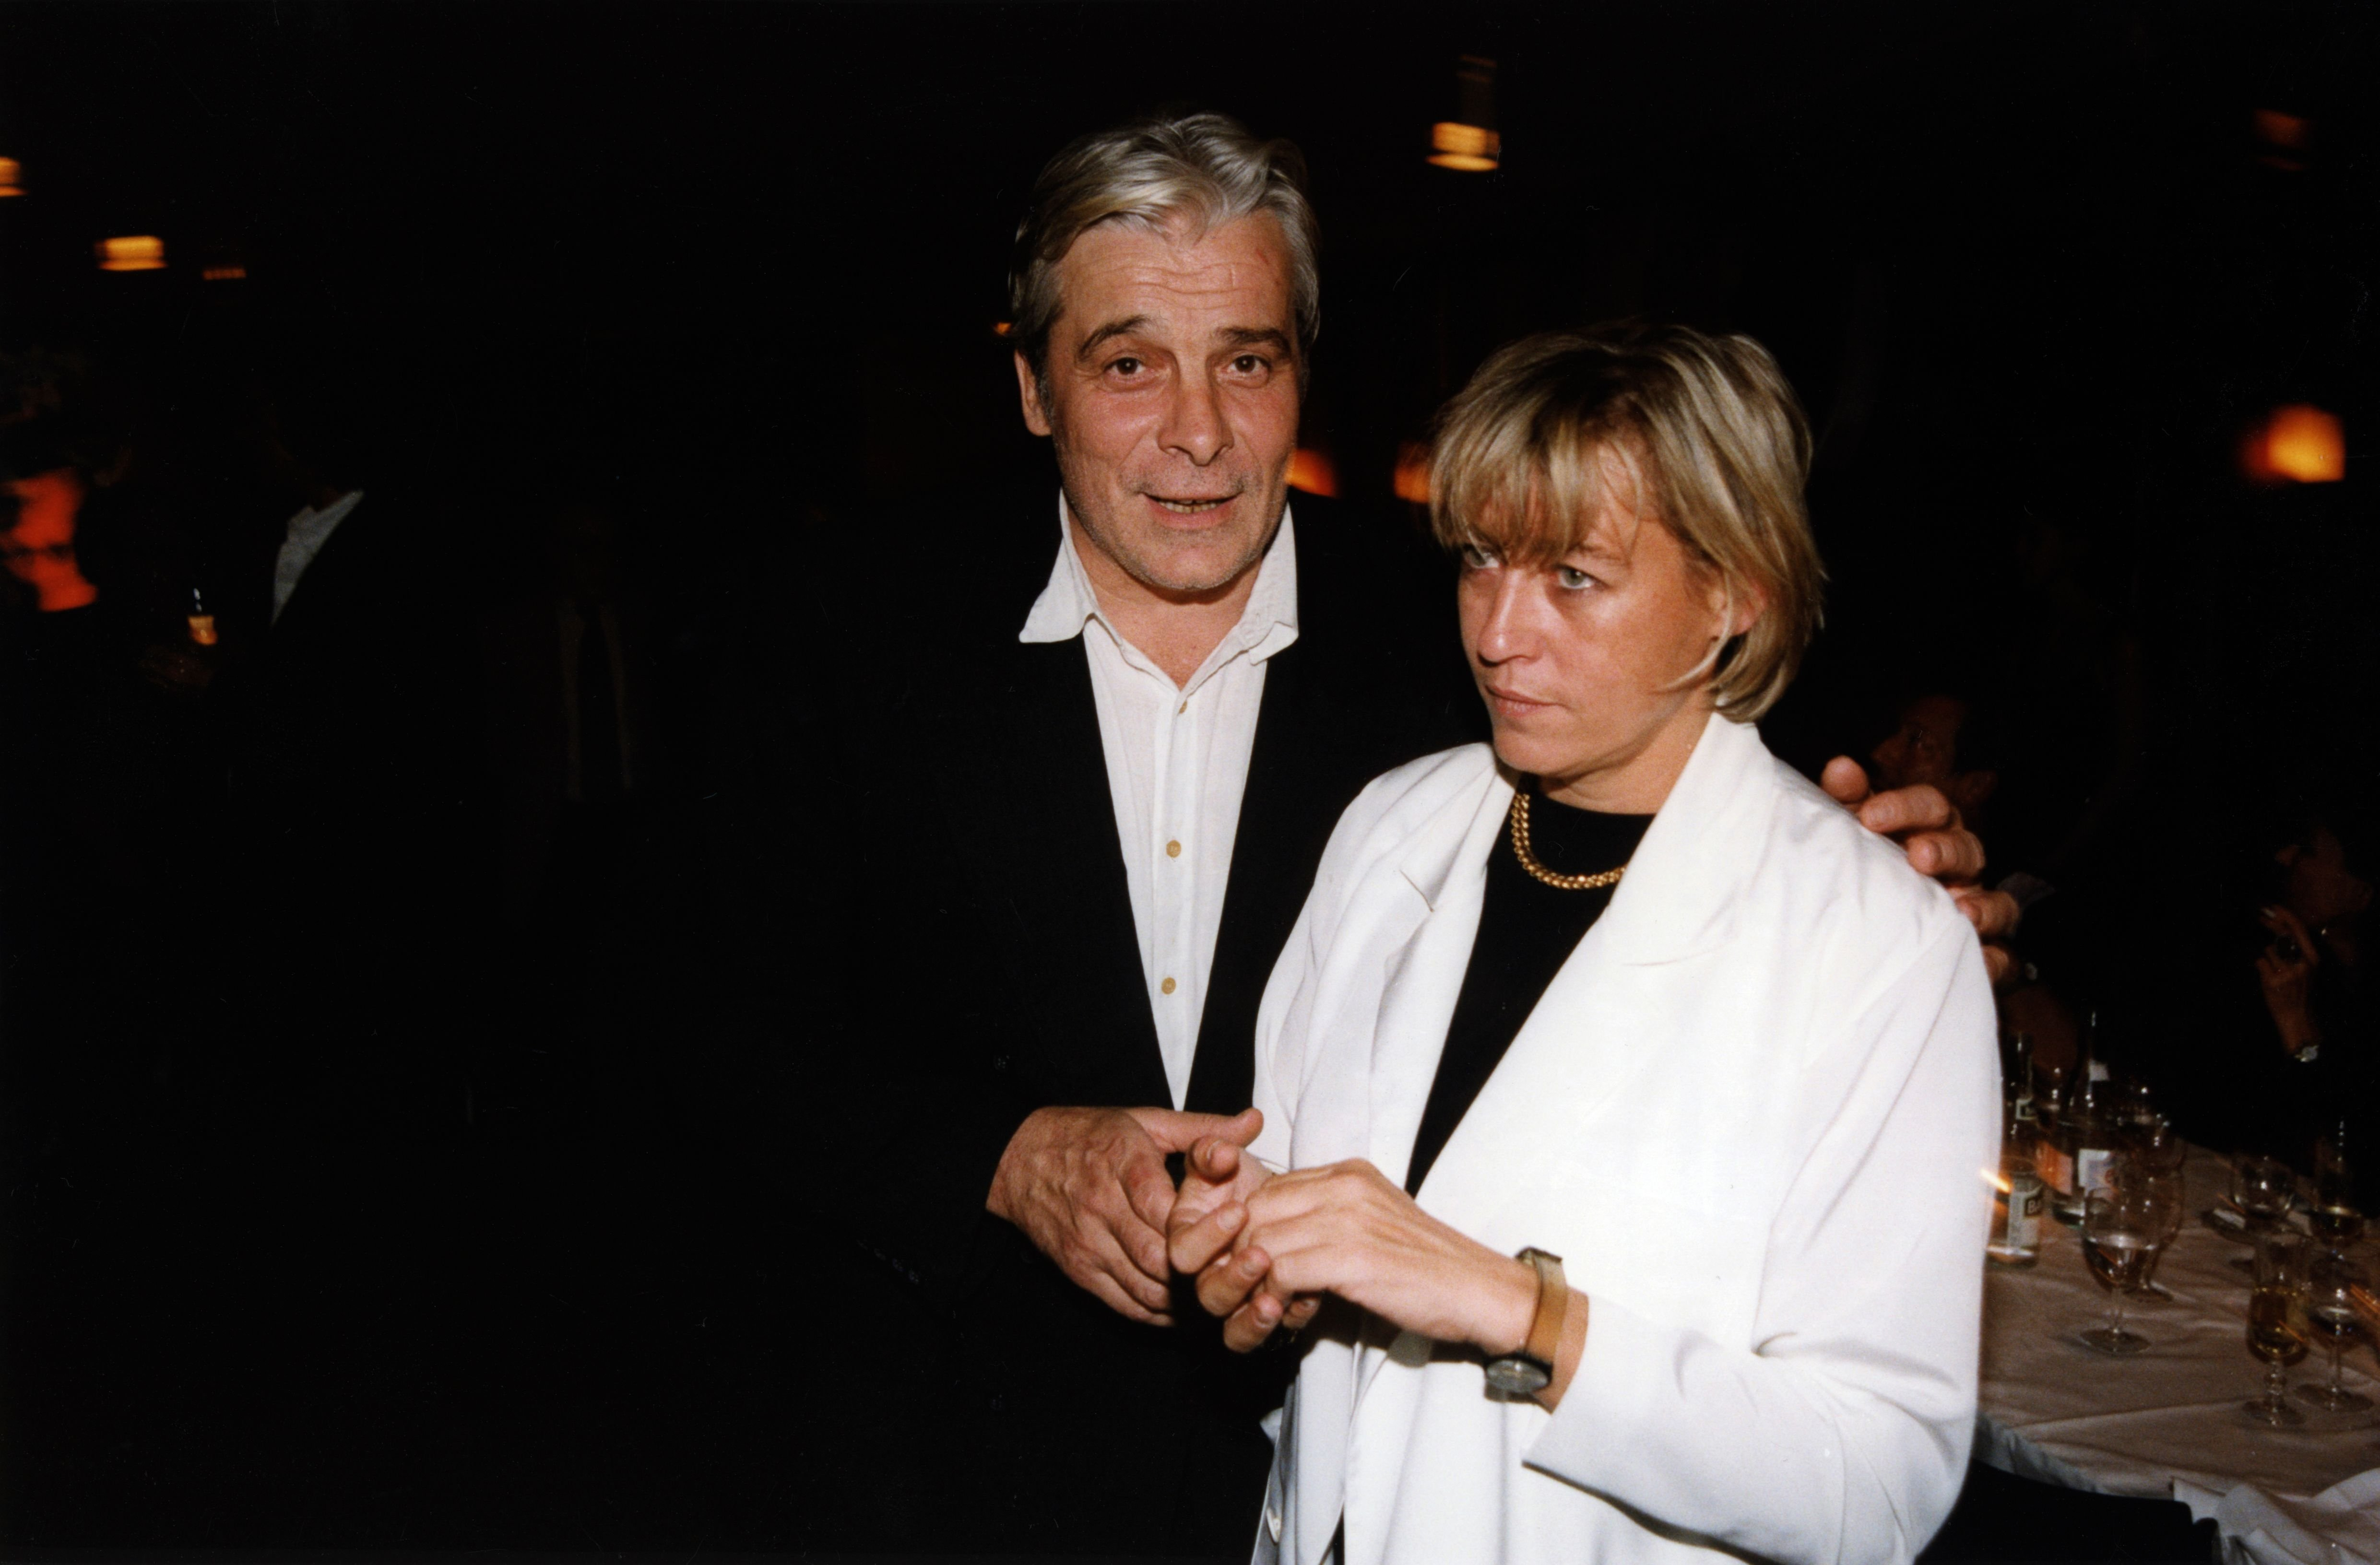 Jacques Weber et sa femme Christine le 16 septembre 1998 à Paris, France. | Photo : Getty Images